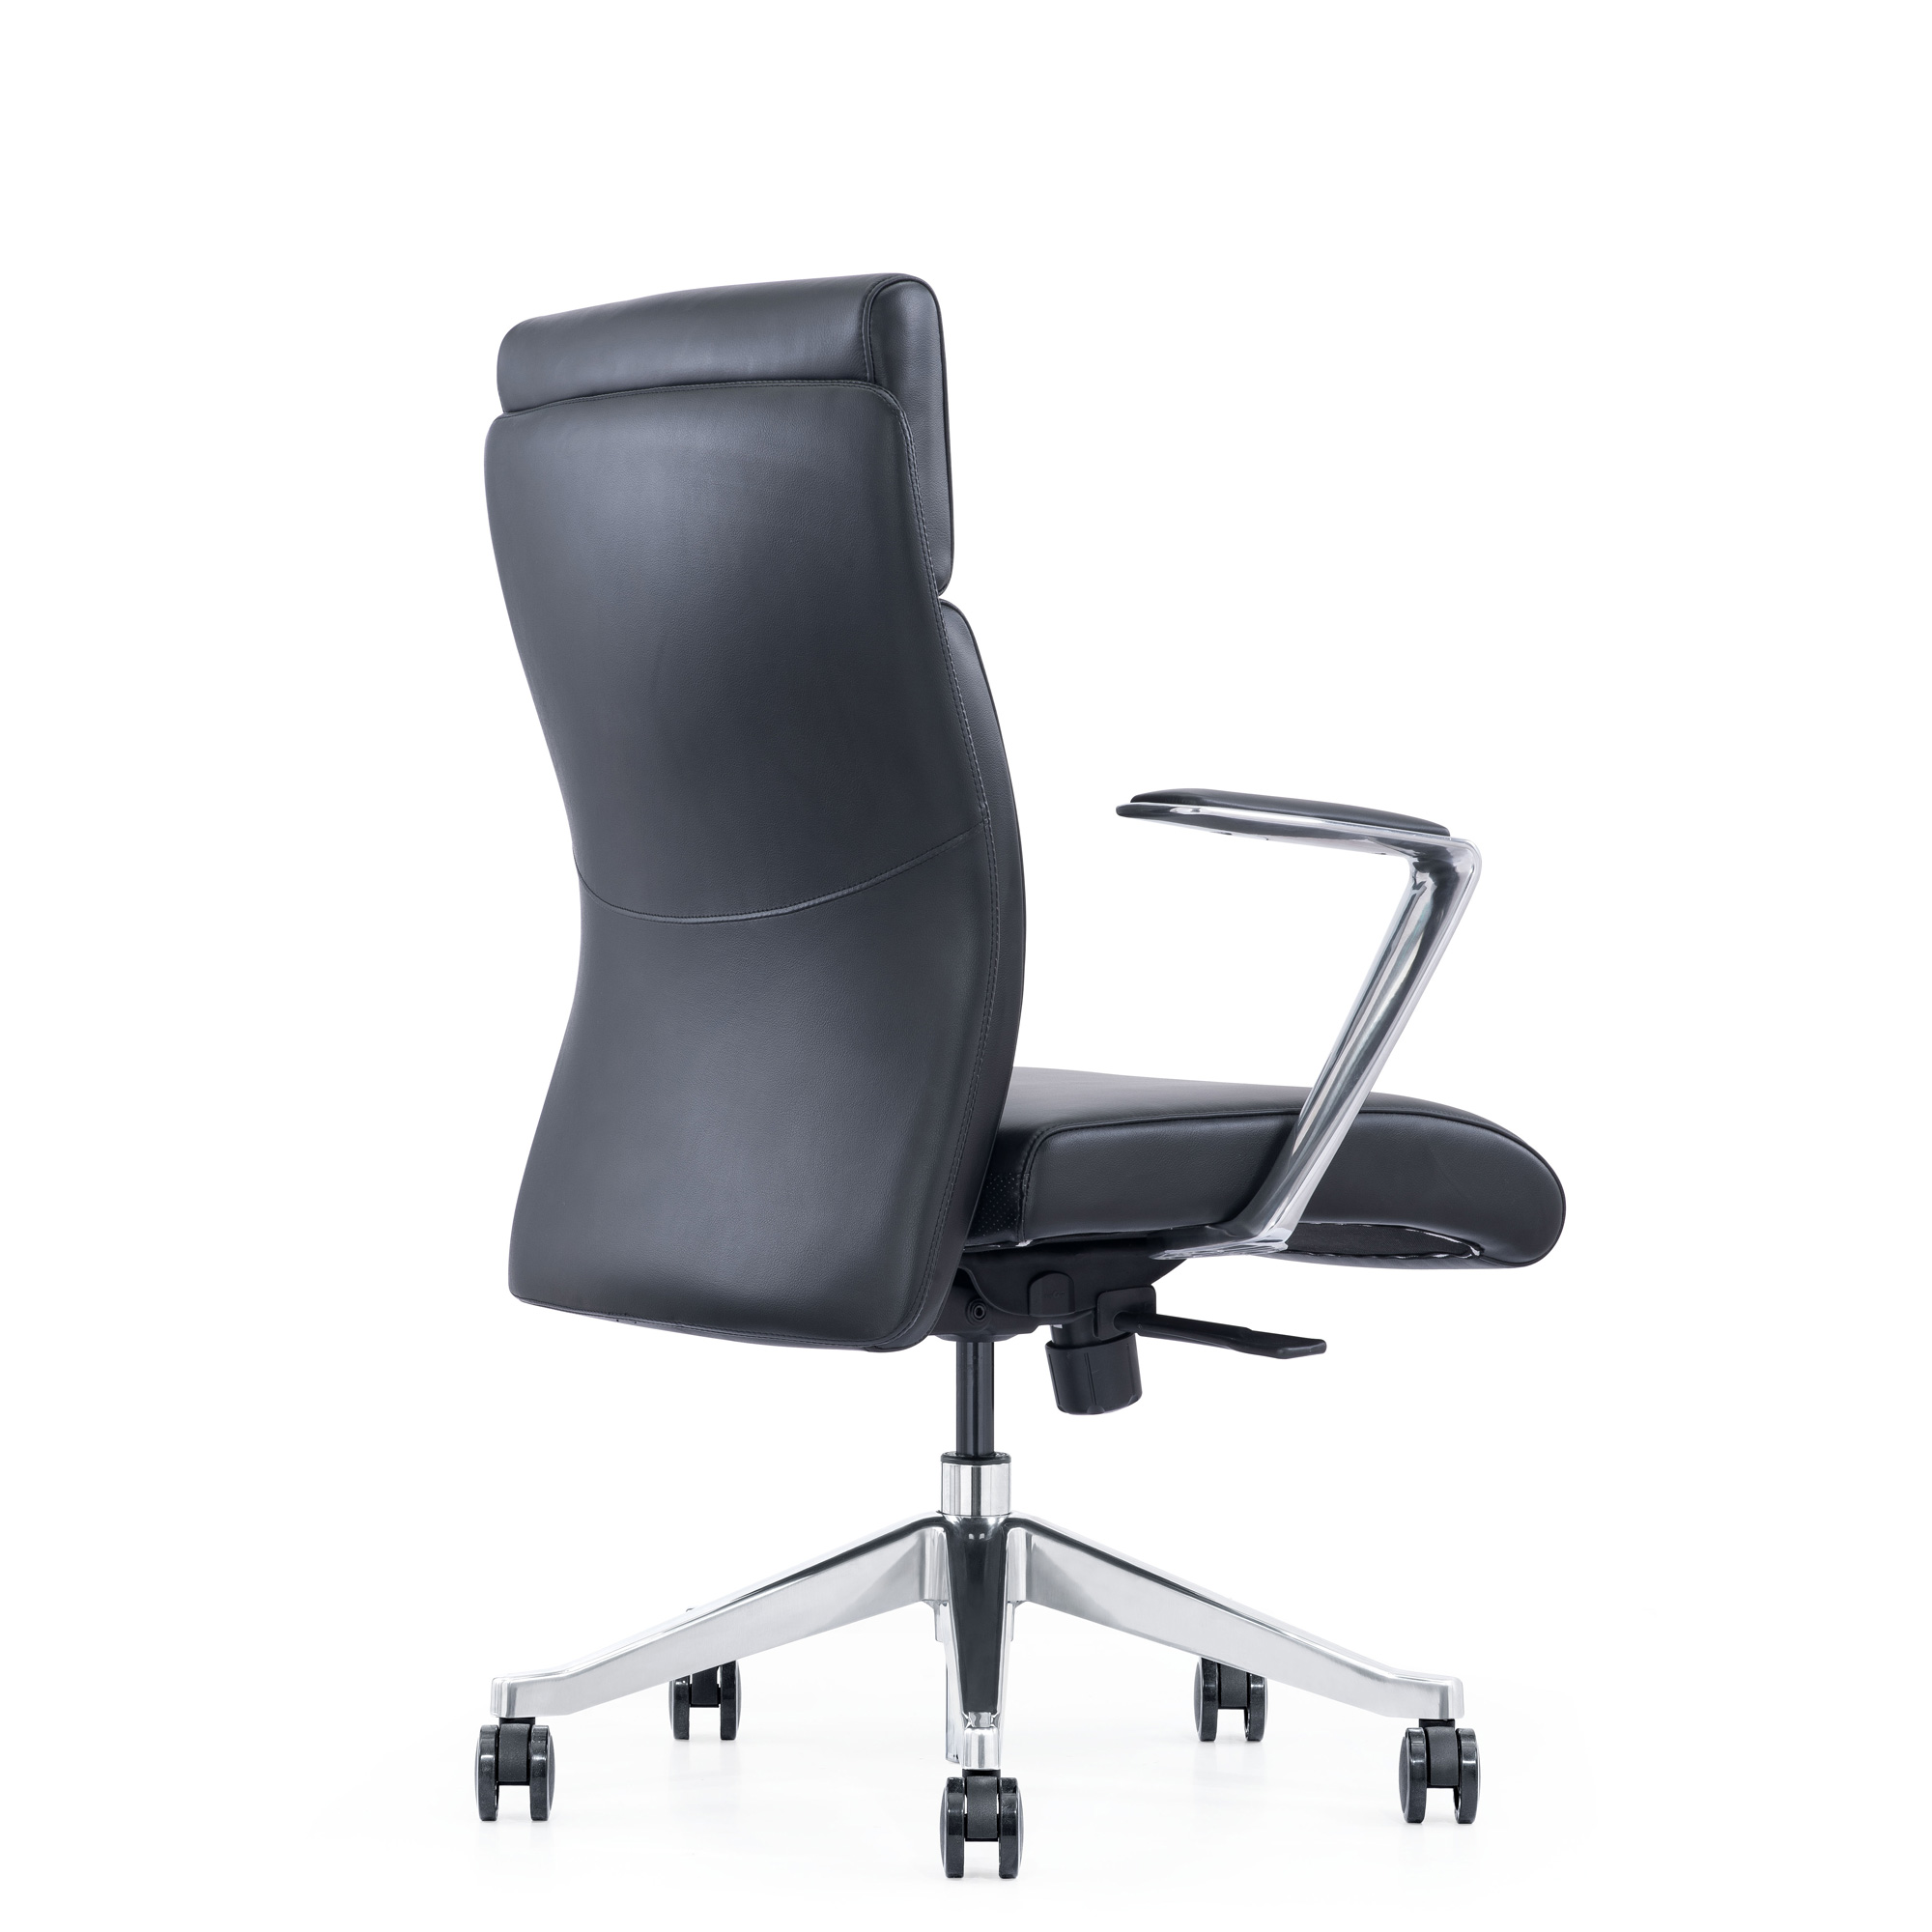 Black Leather Home Office Chair with Arms And Wheels